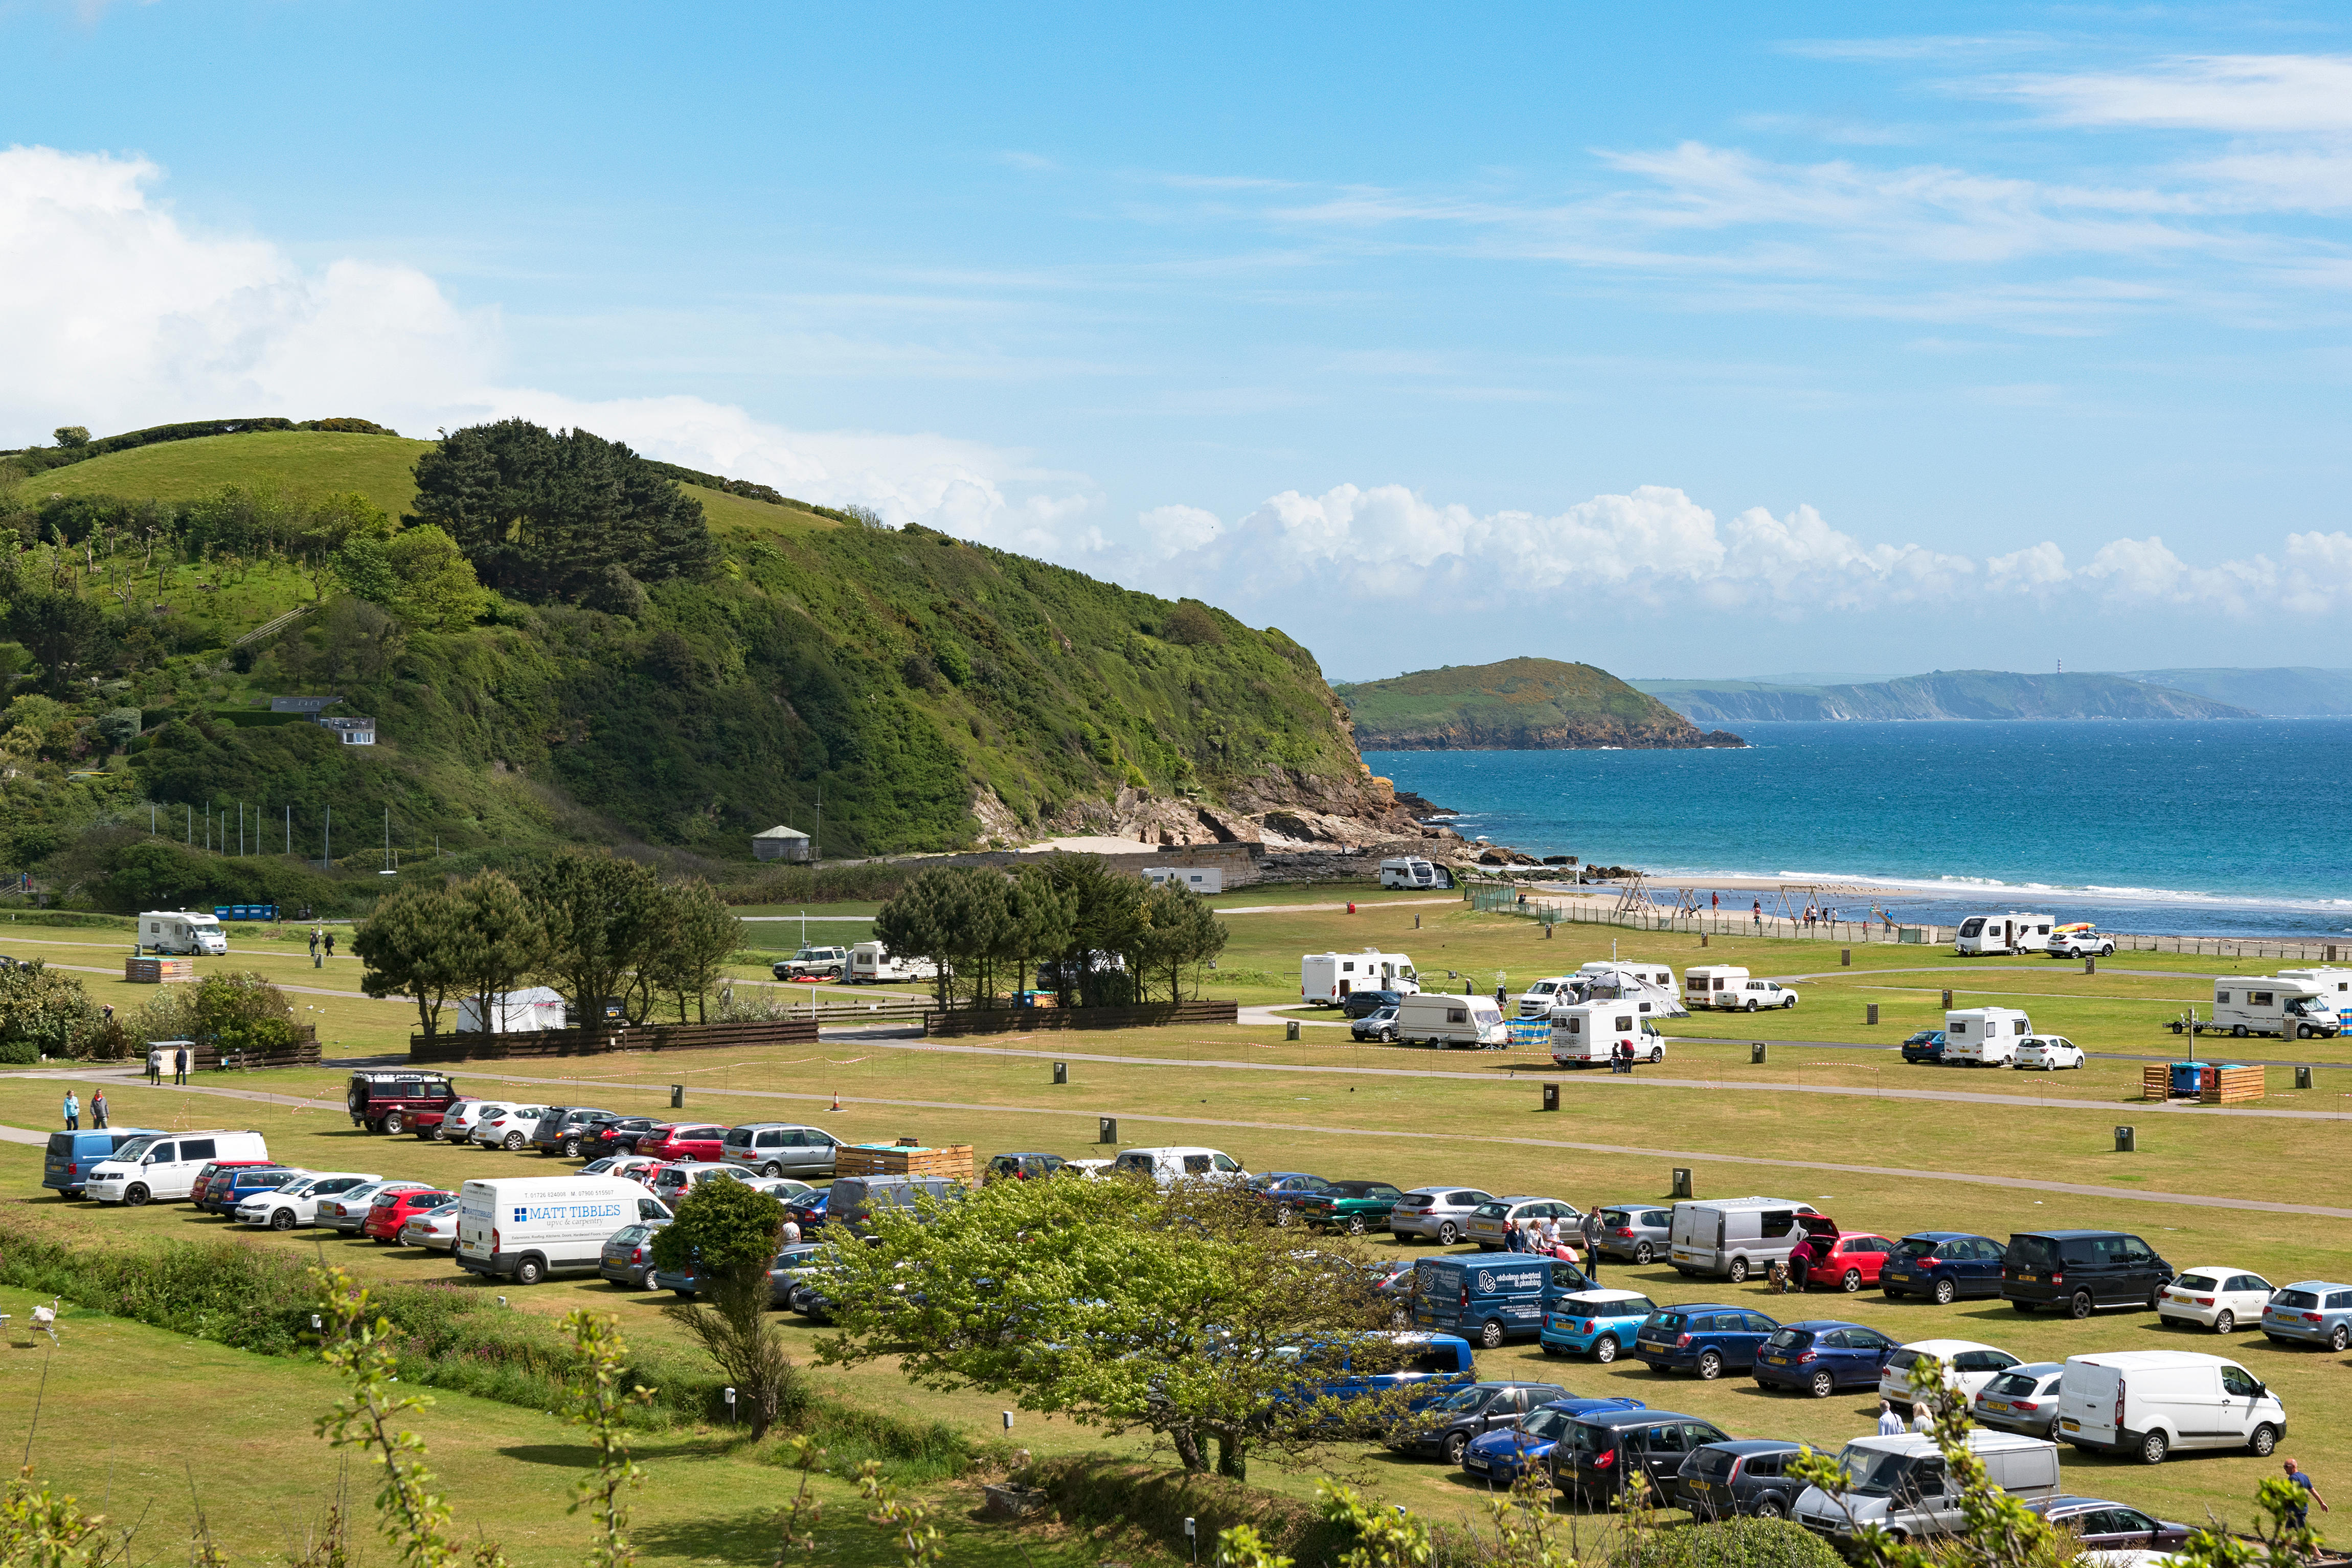 Brits visiting Cornwall from a tier 3 region are likely to have their holiday cancelled